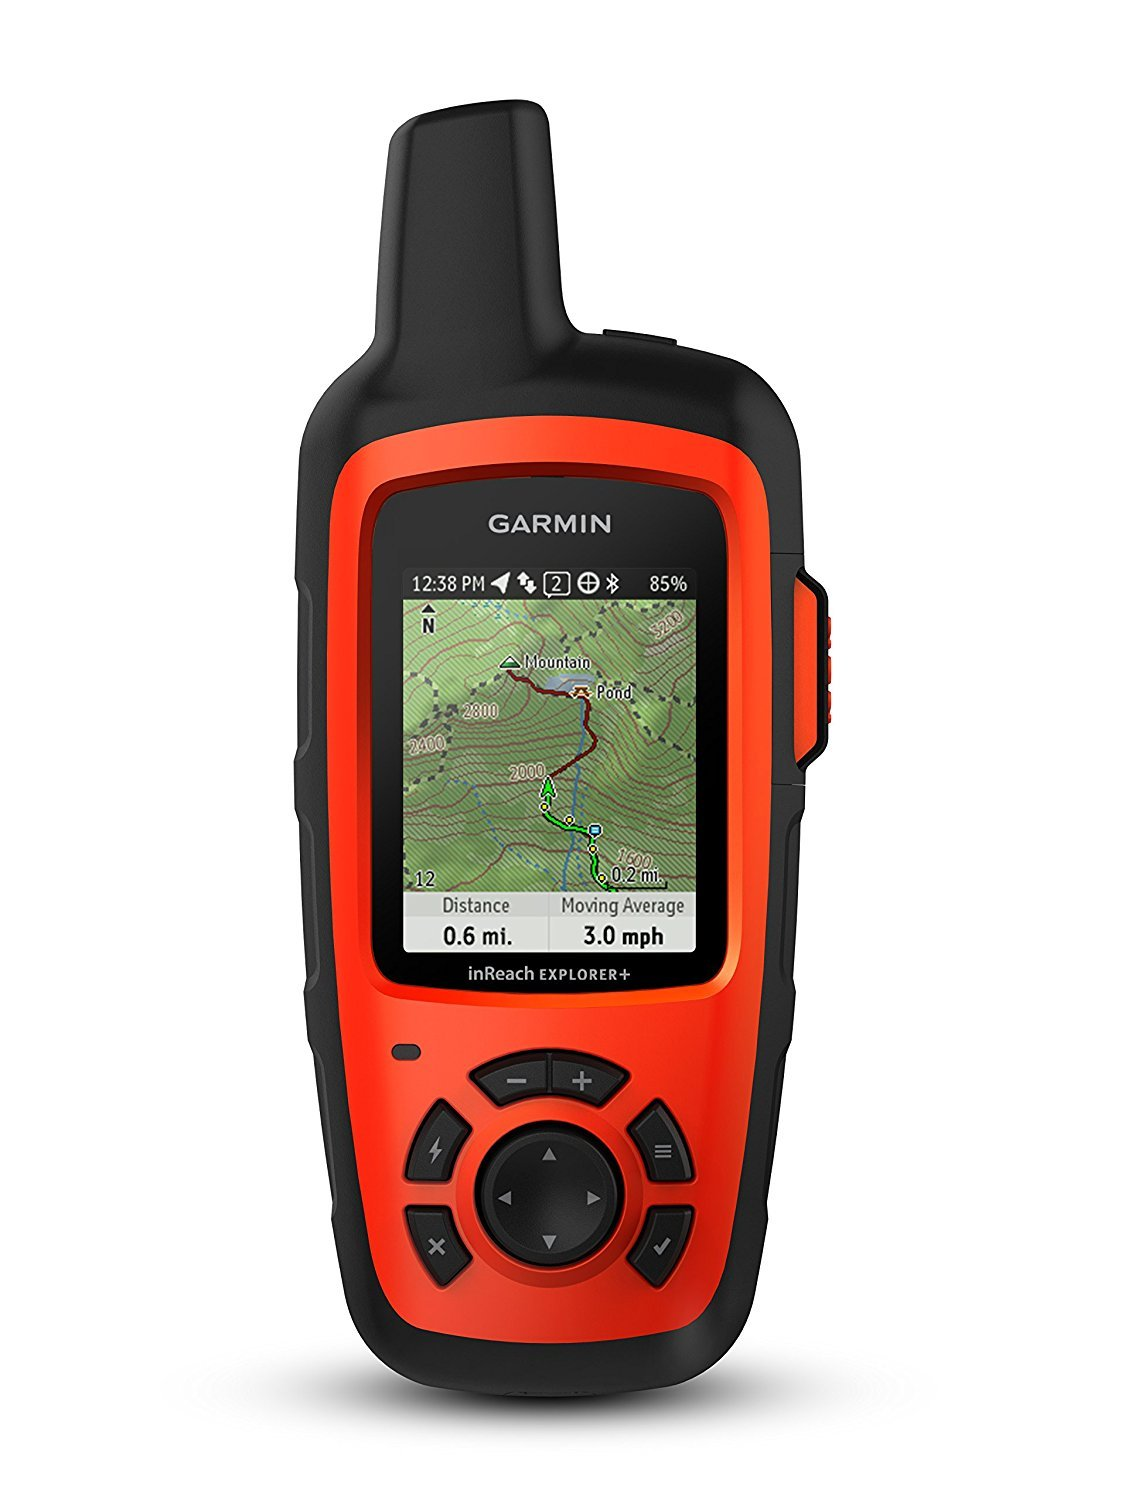 Garmin inReach Explorer+ GPS Bundle w/ Car Charger, Micro USB, Gadget Bag and more by Garmin (Image #4)